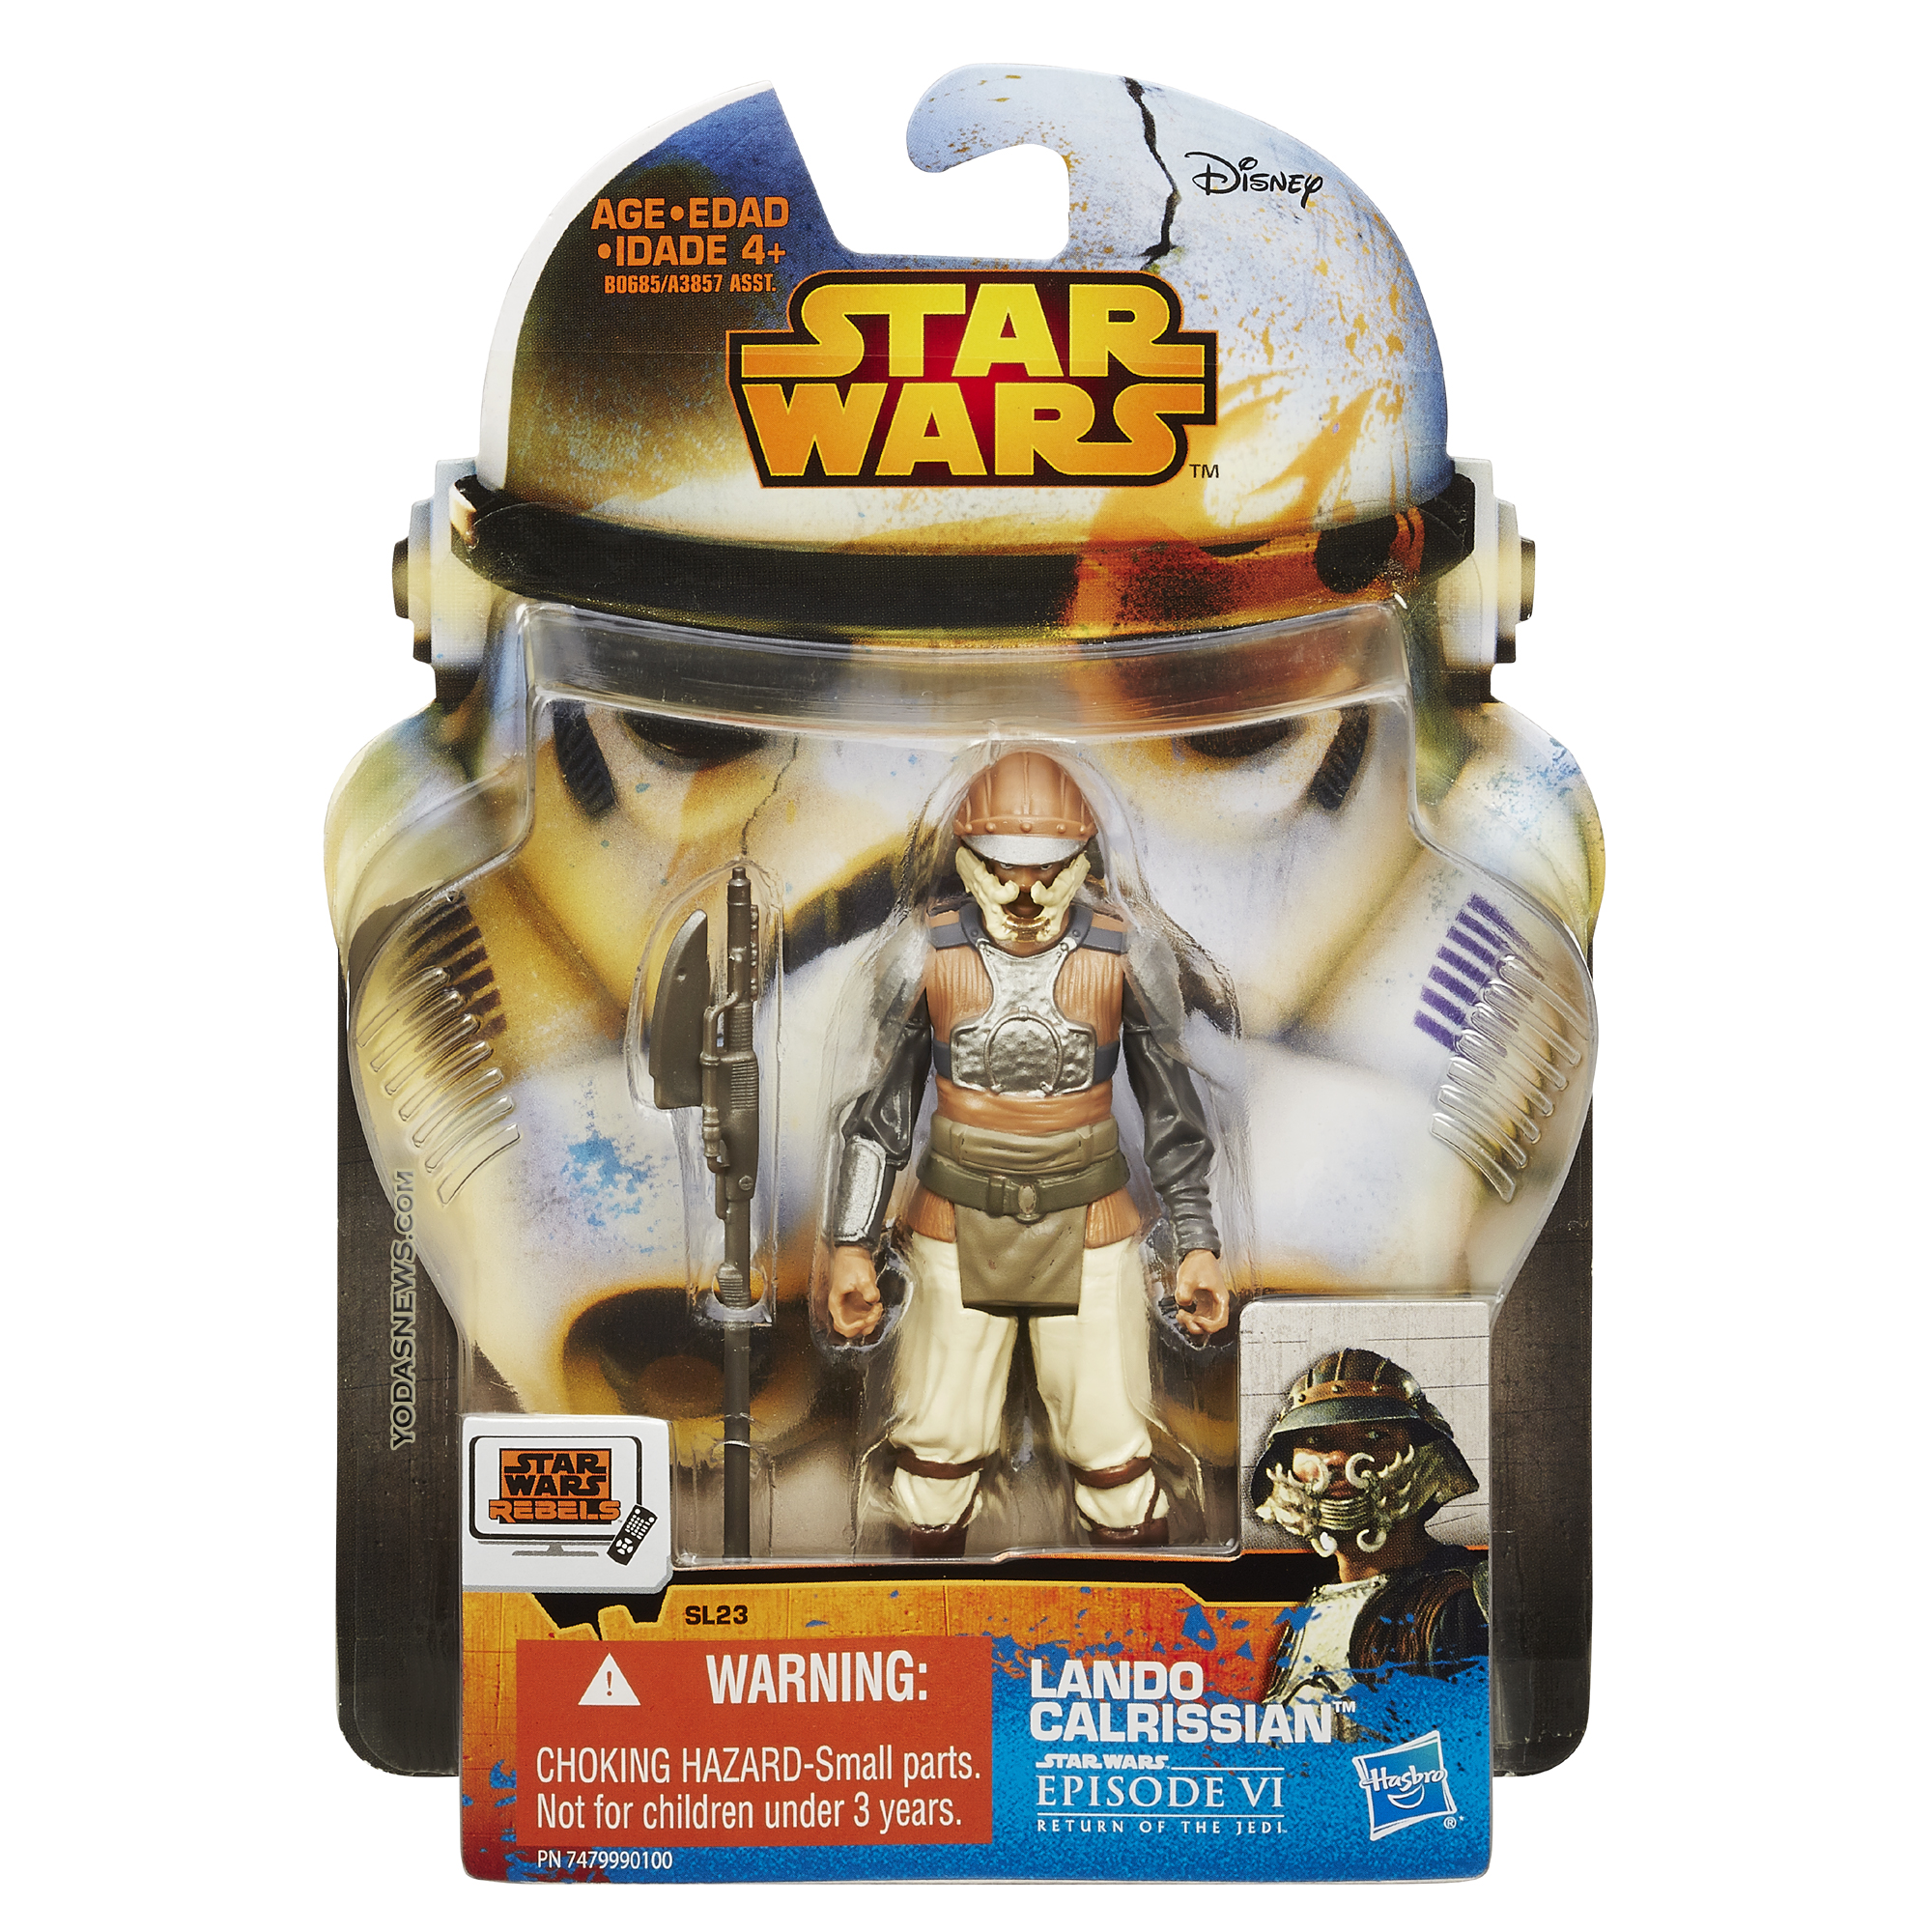 Com star wars action figures collectibles and movies news